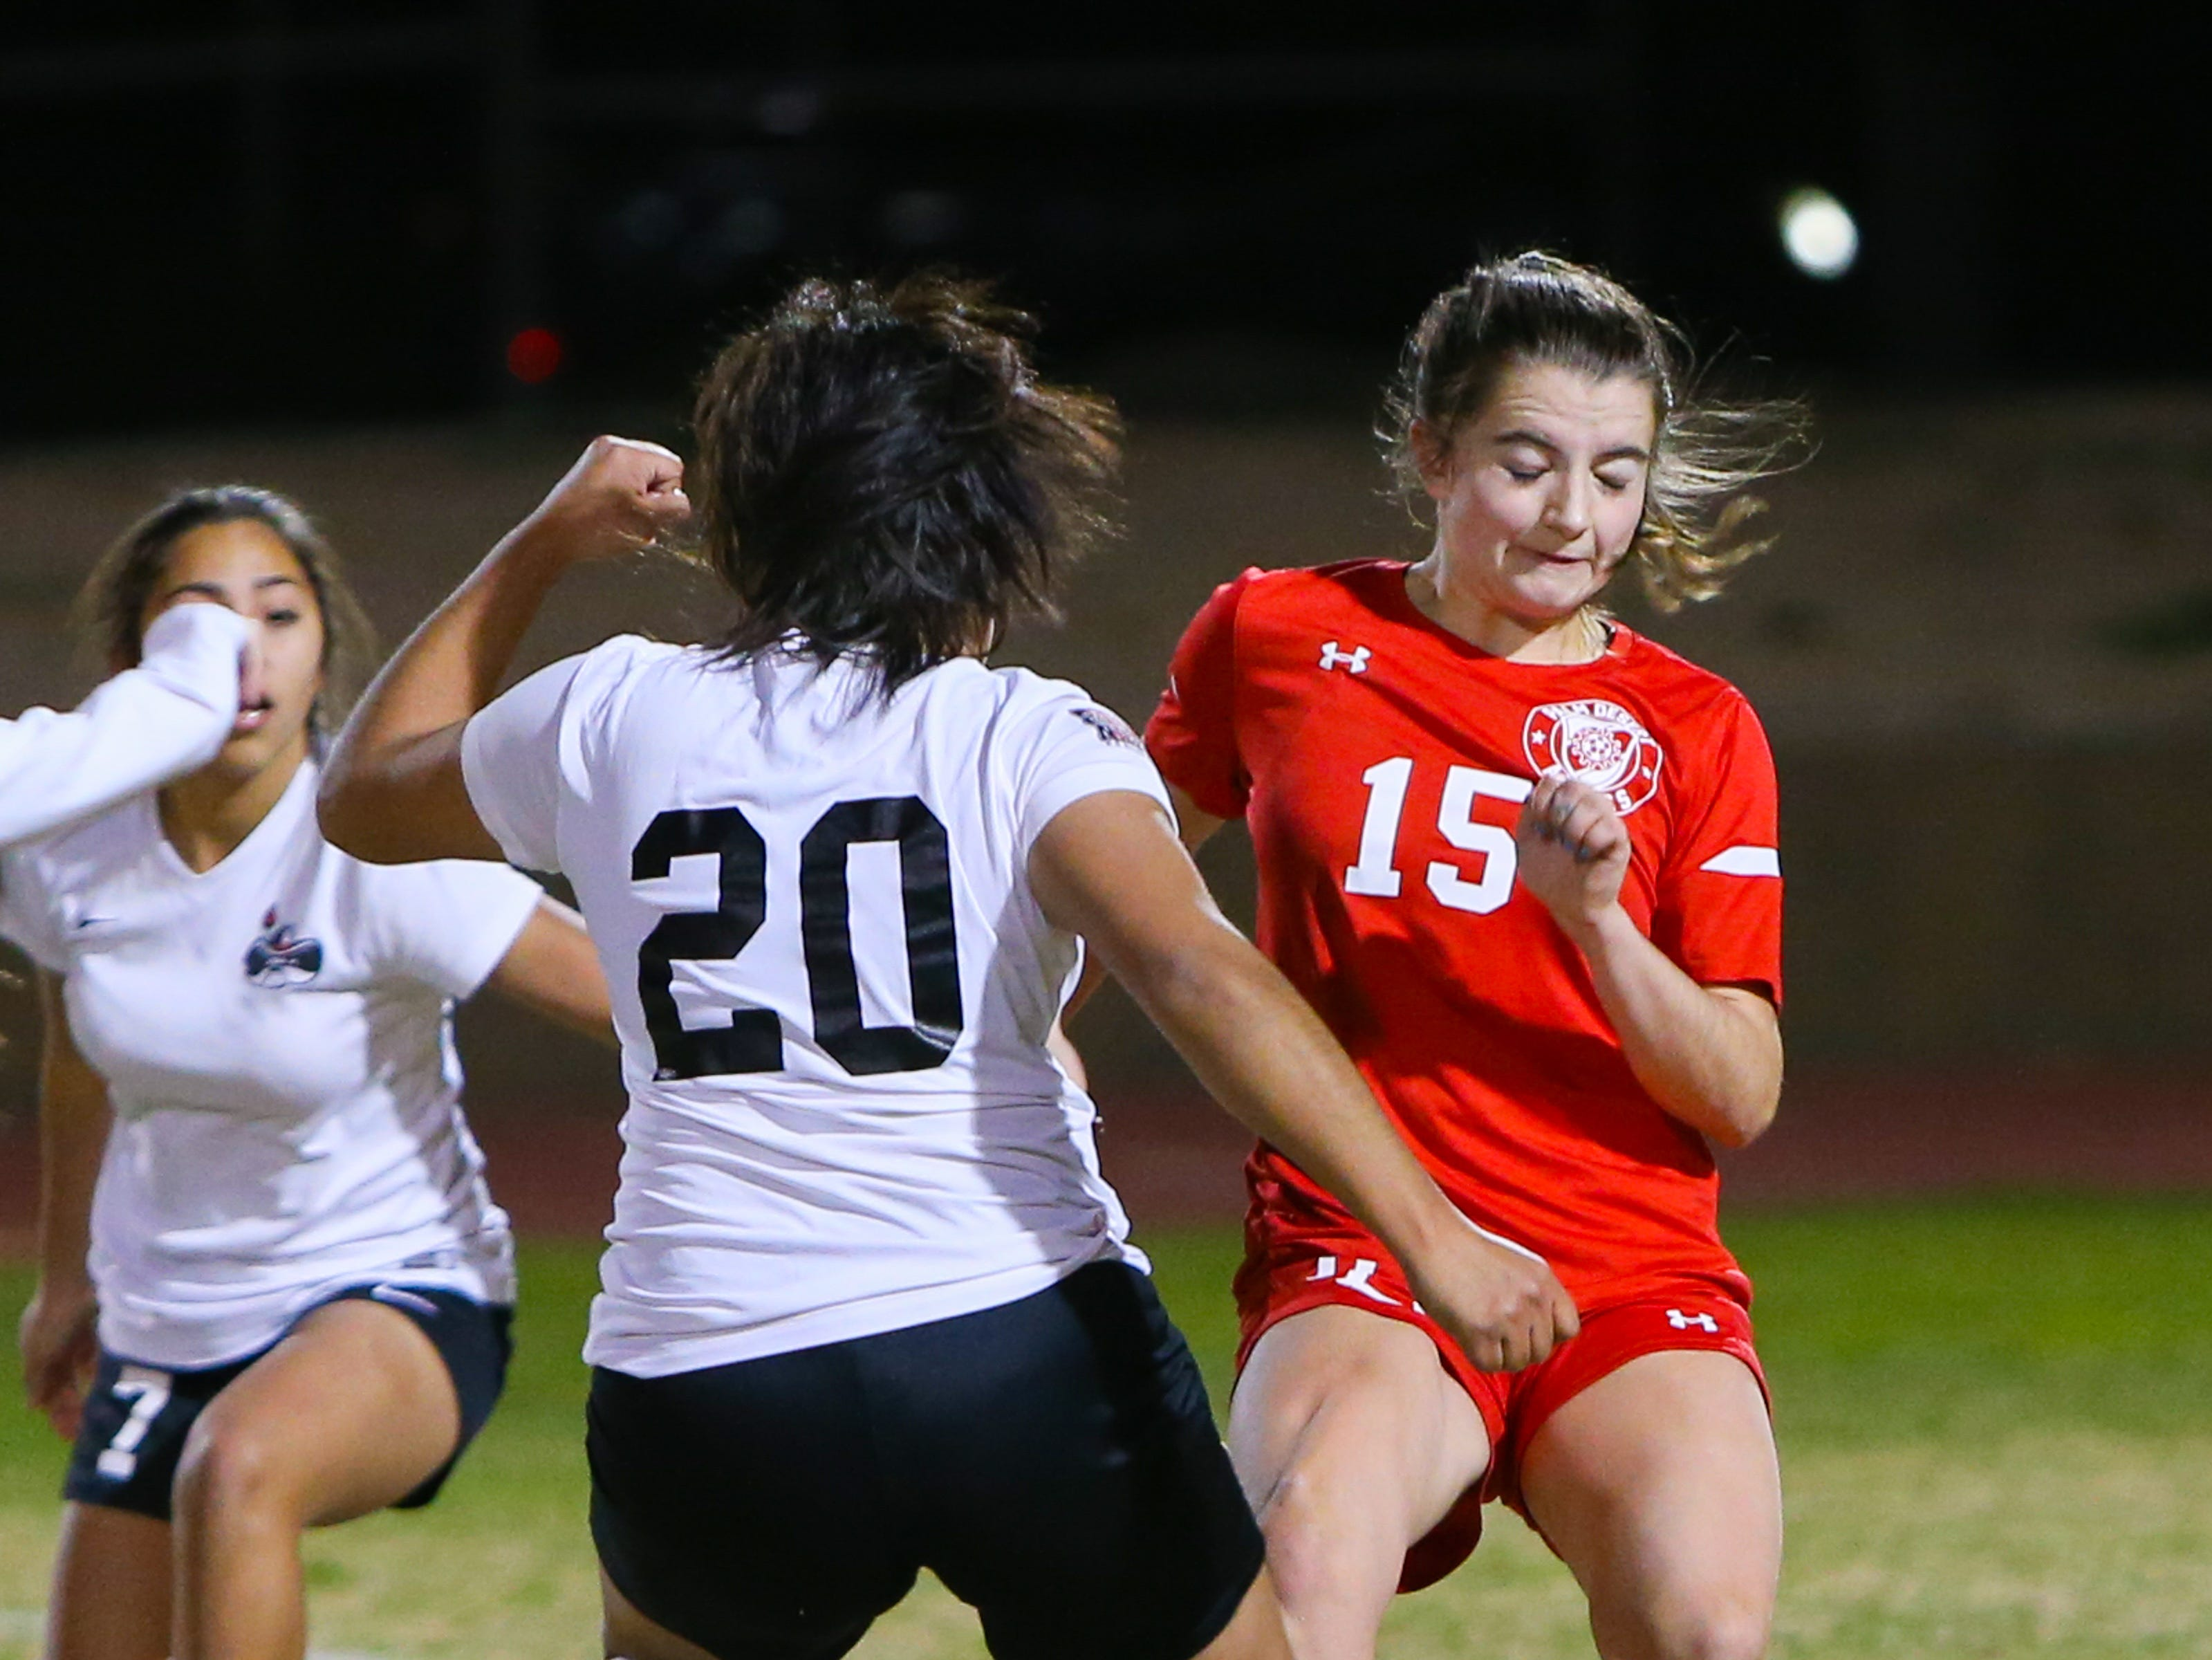 Players collided with each other while racing towards the ball. The Palm Desert varsity soccer team won Wednesday's home playoff game against Miller by a score of 5-1.